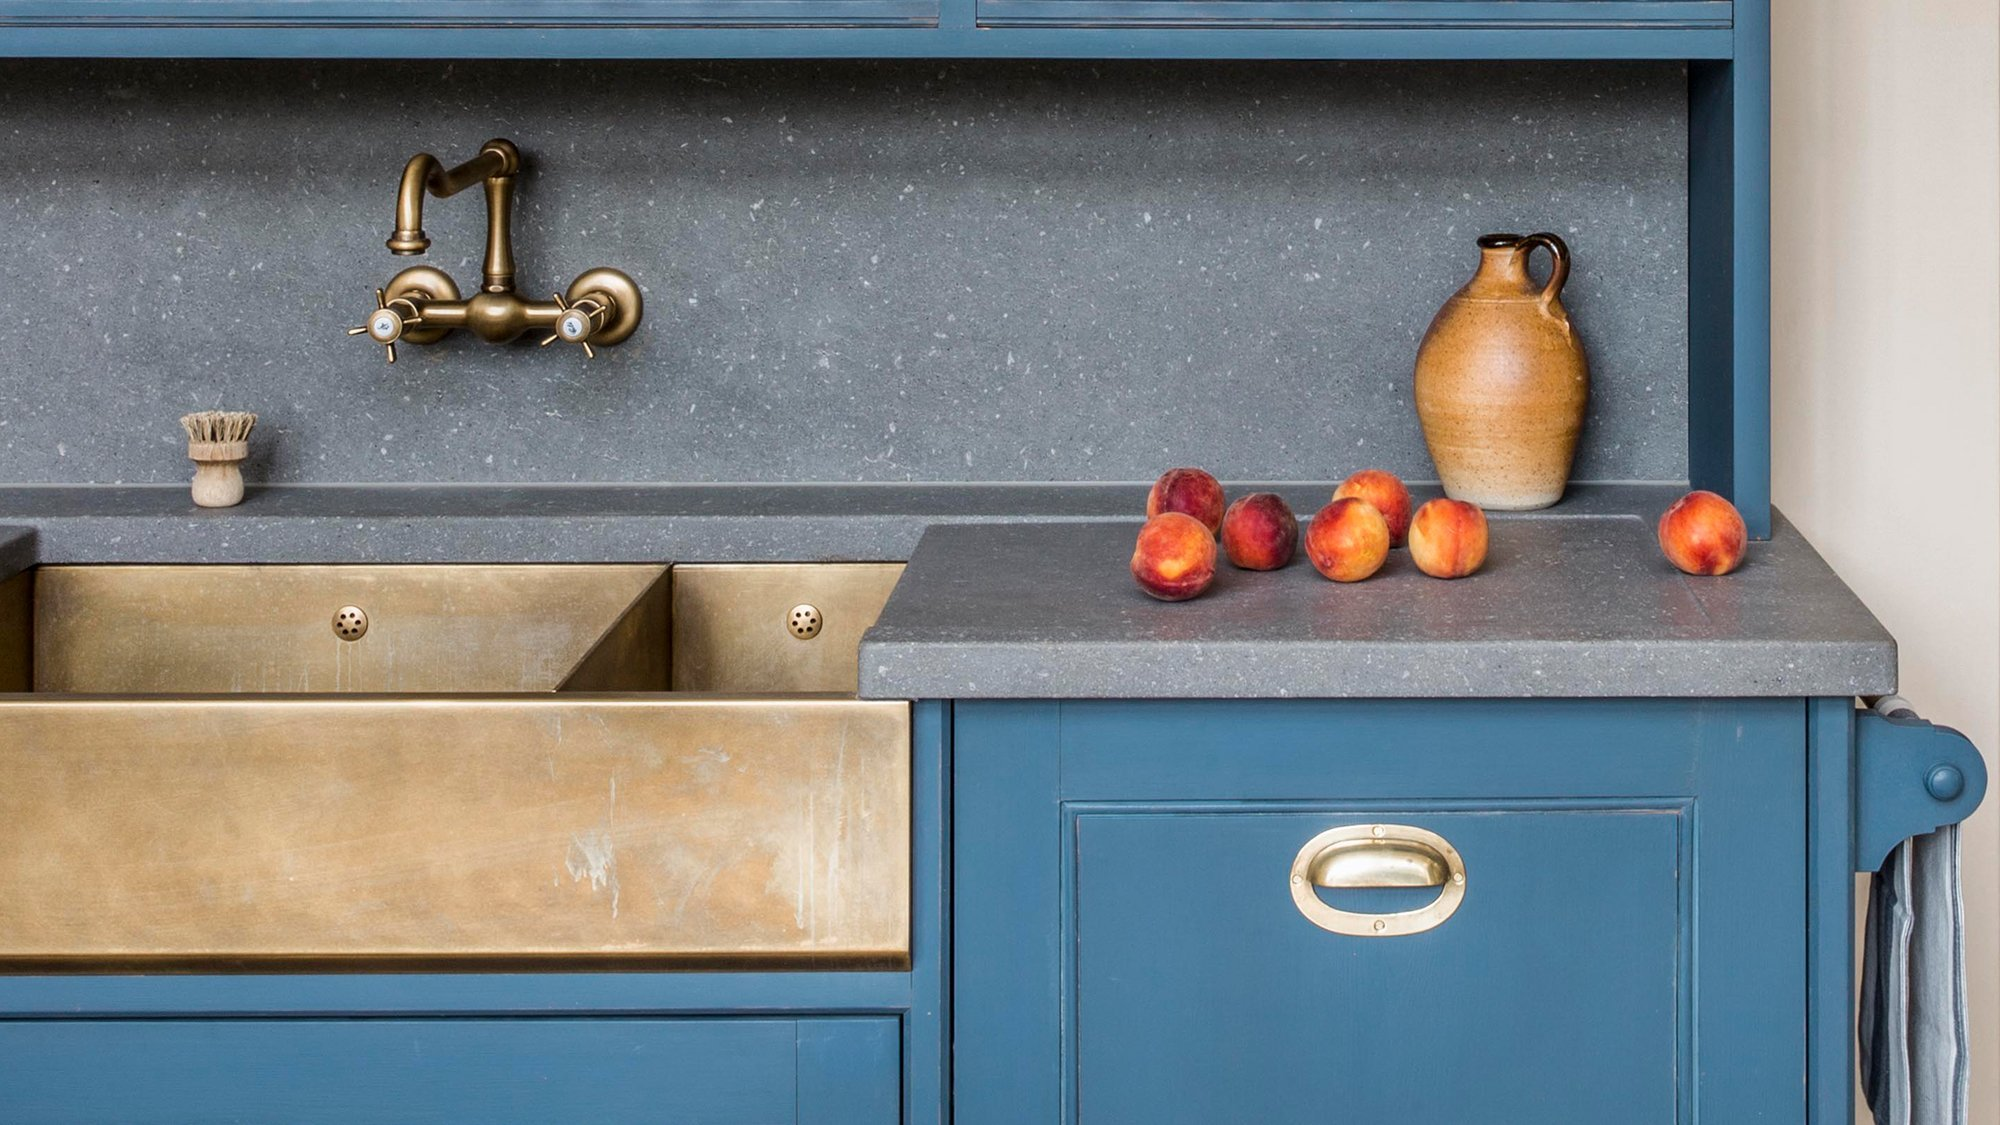 Aged brass sink and tap framed by a Basalt work surface